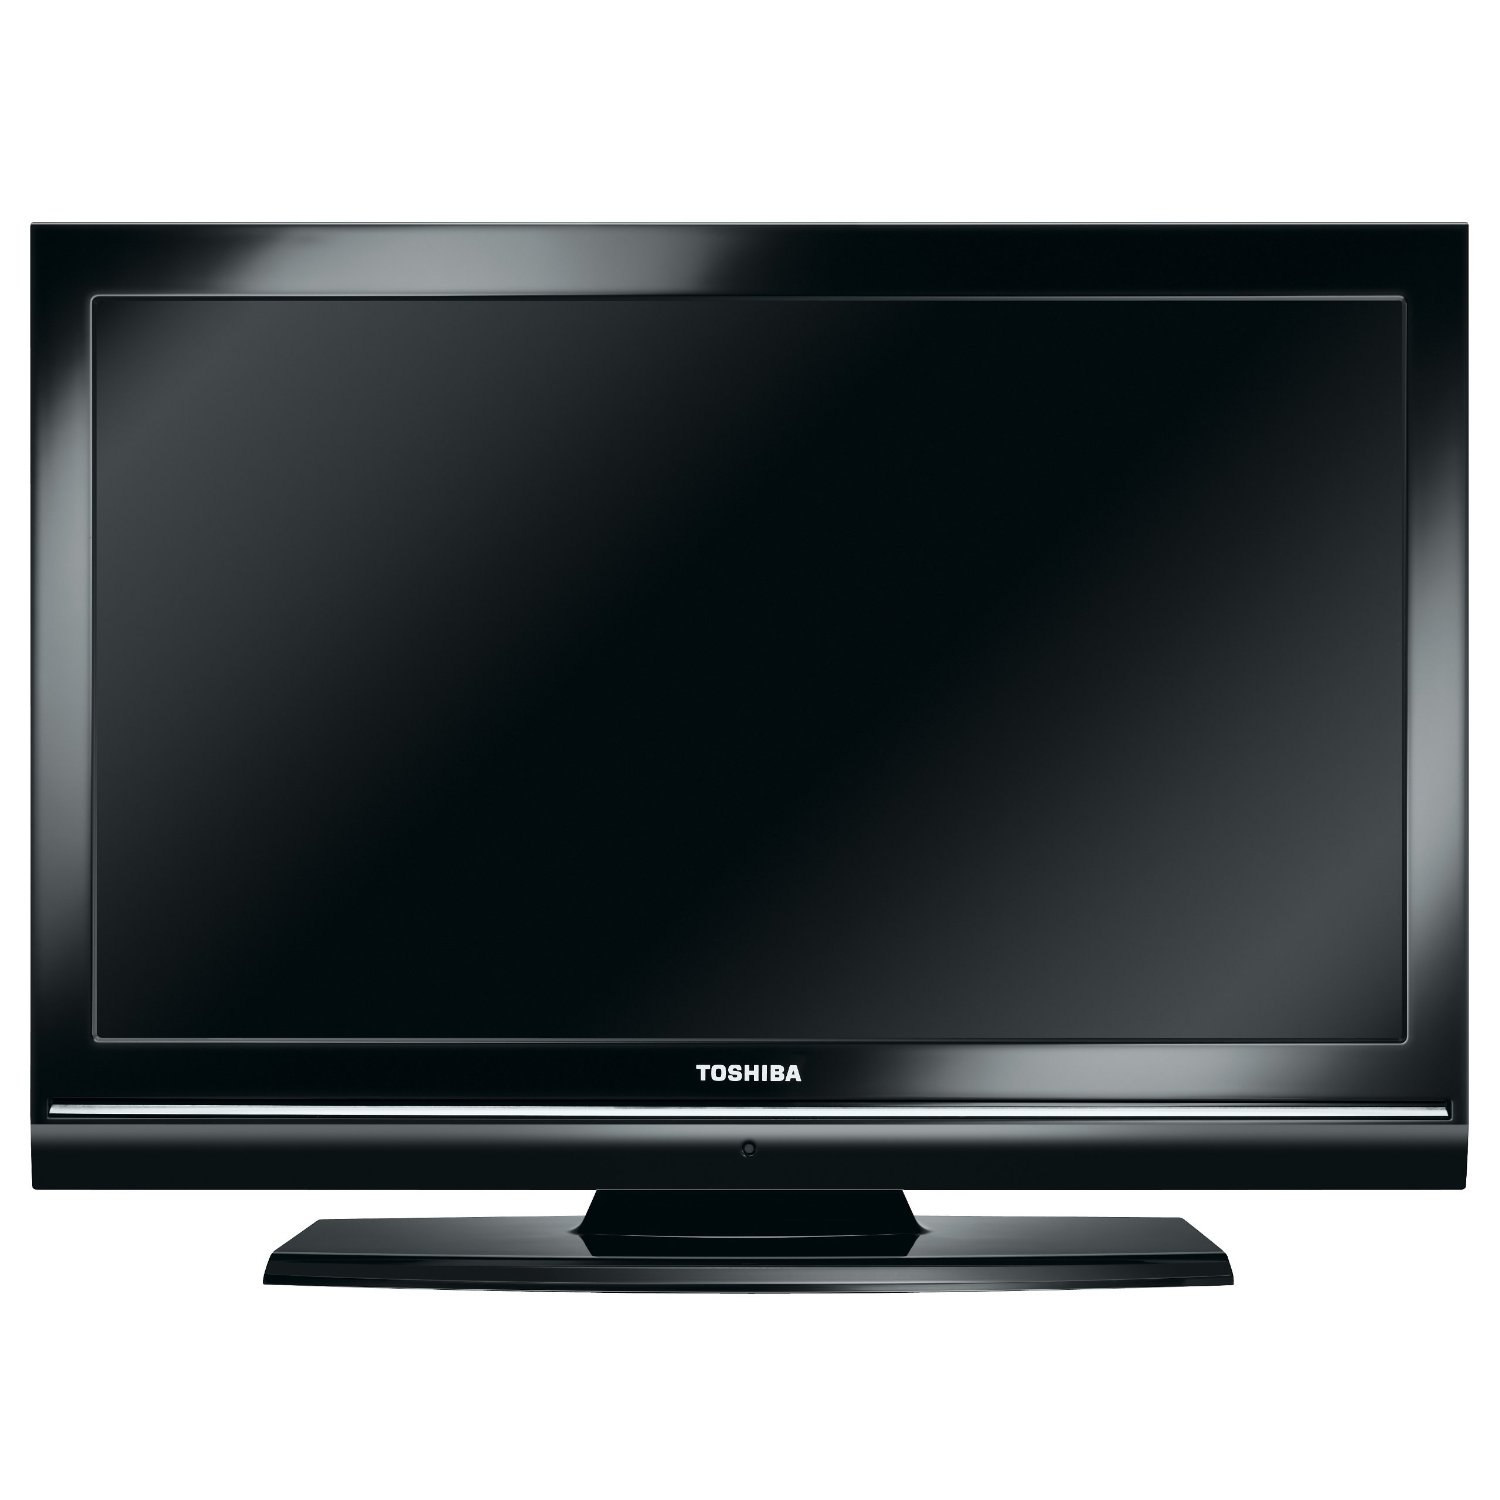 toshiba 22 22dv500 hd ready digital freeview lcd tv dvd combi ebay. Black Bedroom Furniture Sets. Home Design Ideas